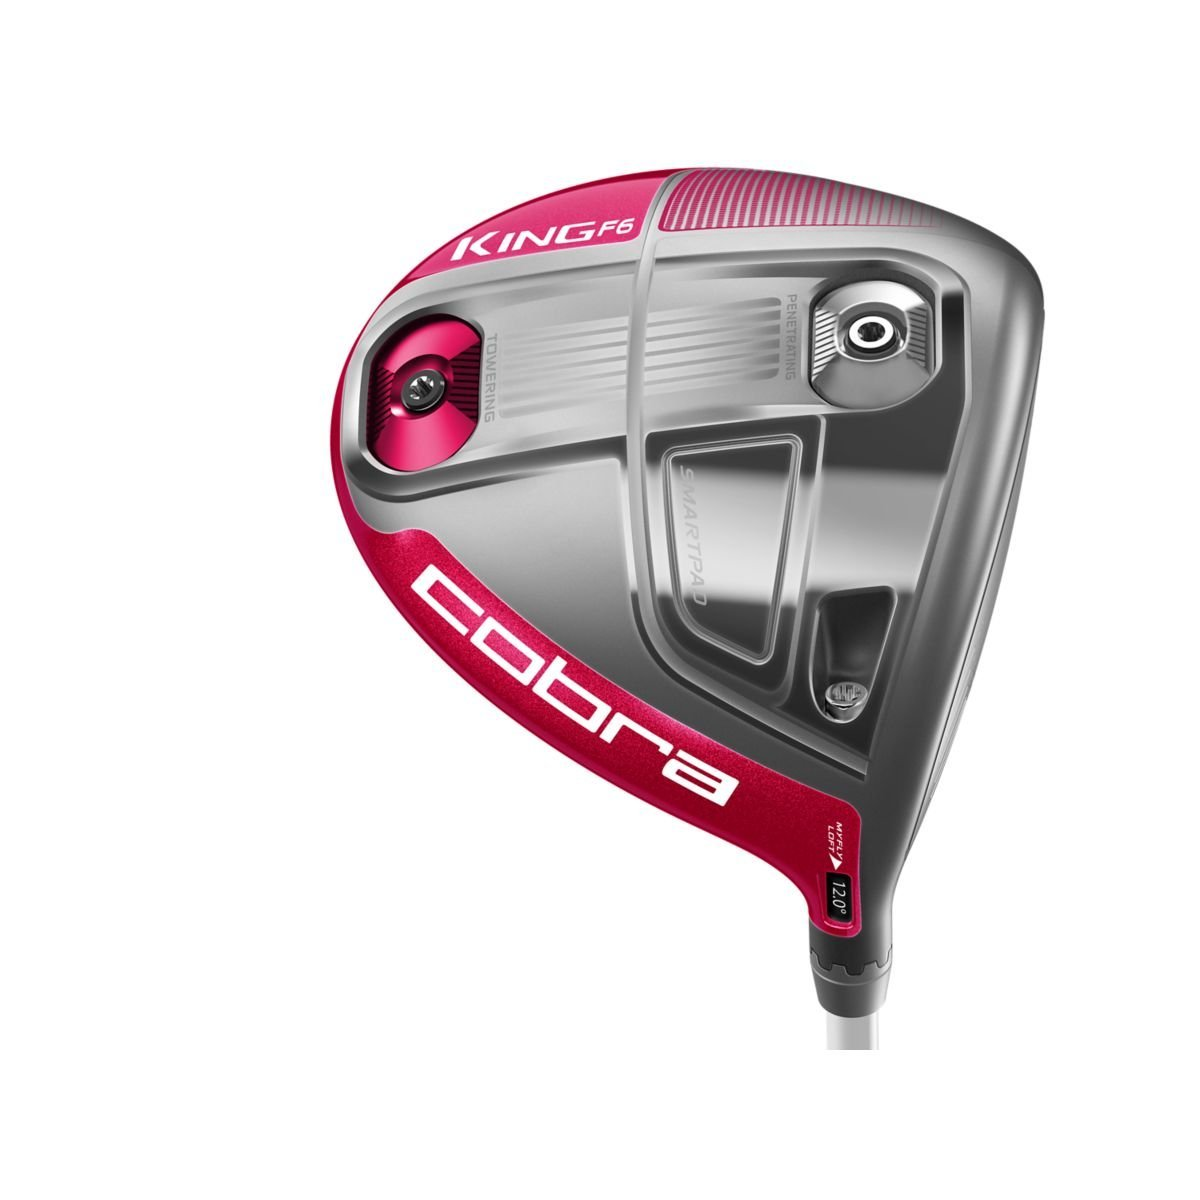 cobra women's king f6 driver